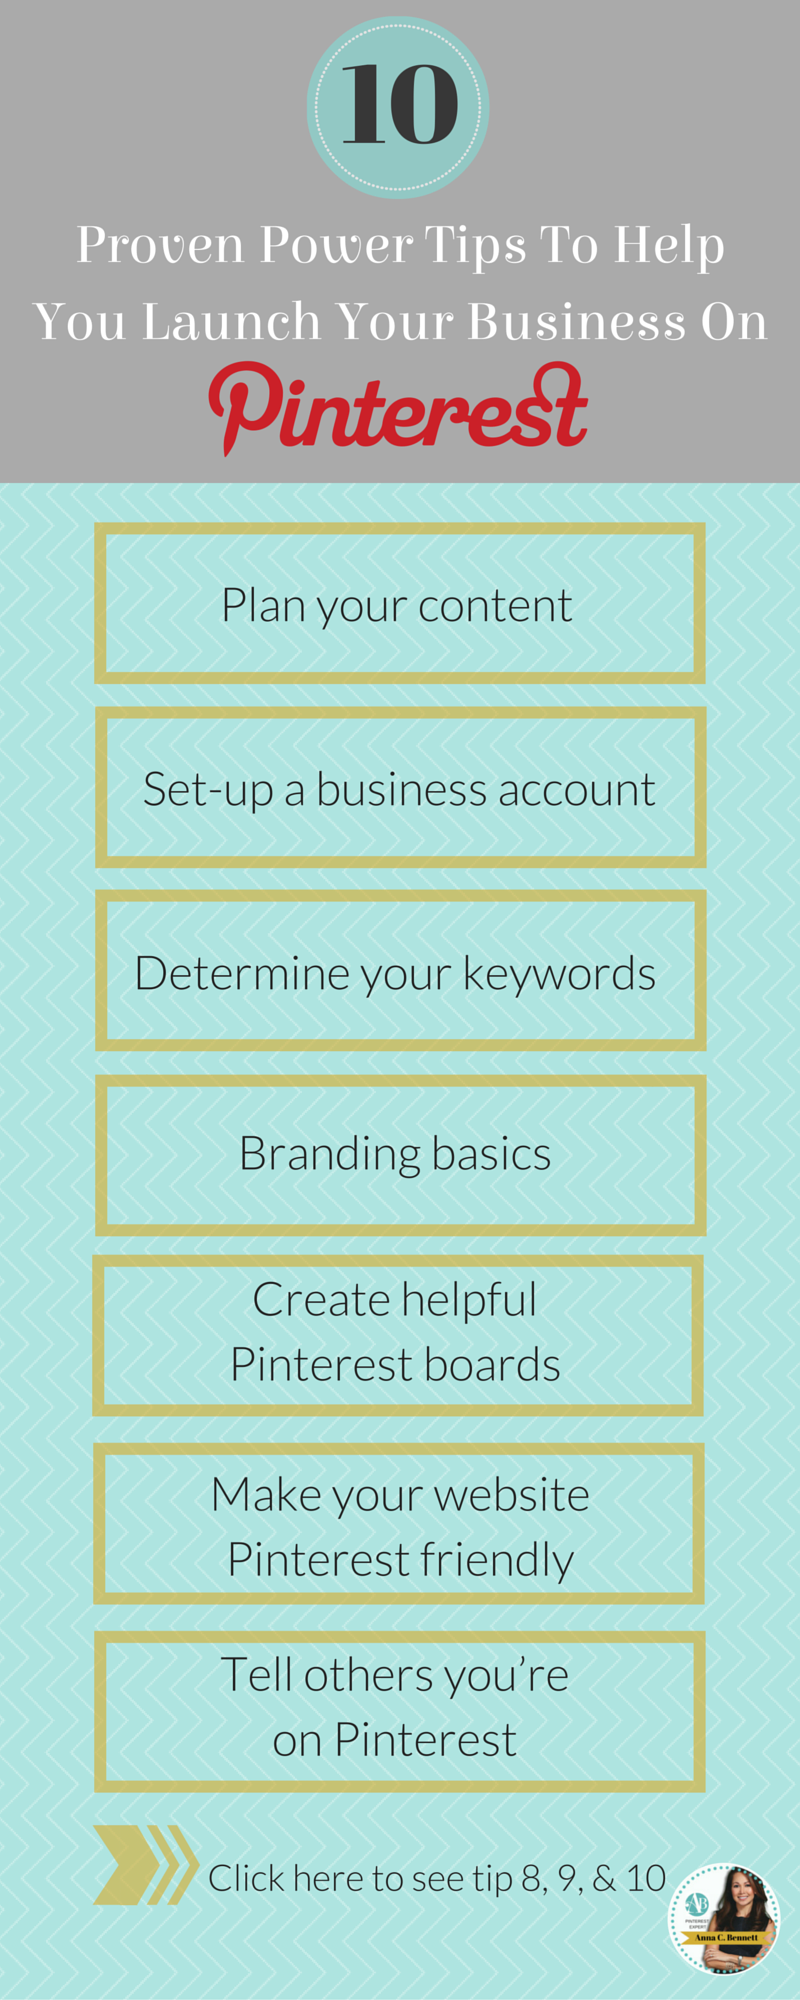 Regardless of the type of business you are in, if you can find a way to leverage Pinterest into your marketing mix you should. Learn 10 time saving tips to avoid the most common Pinterest marketing mistakes http://www.whiteglovesocialmedia.com/how-to-launch-a-business-on-pinterest-10-power-tips/ | Pinterest for Business Tips by Pinterest Marketing Expert Anna Bennett